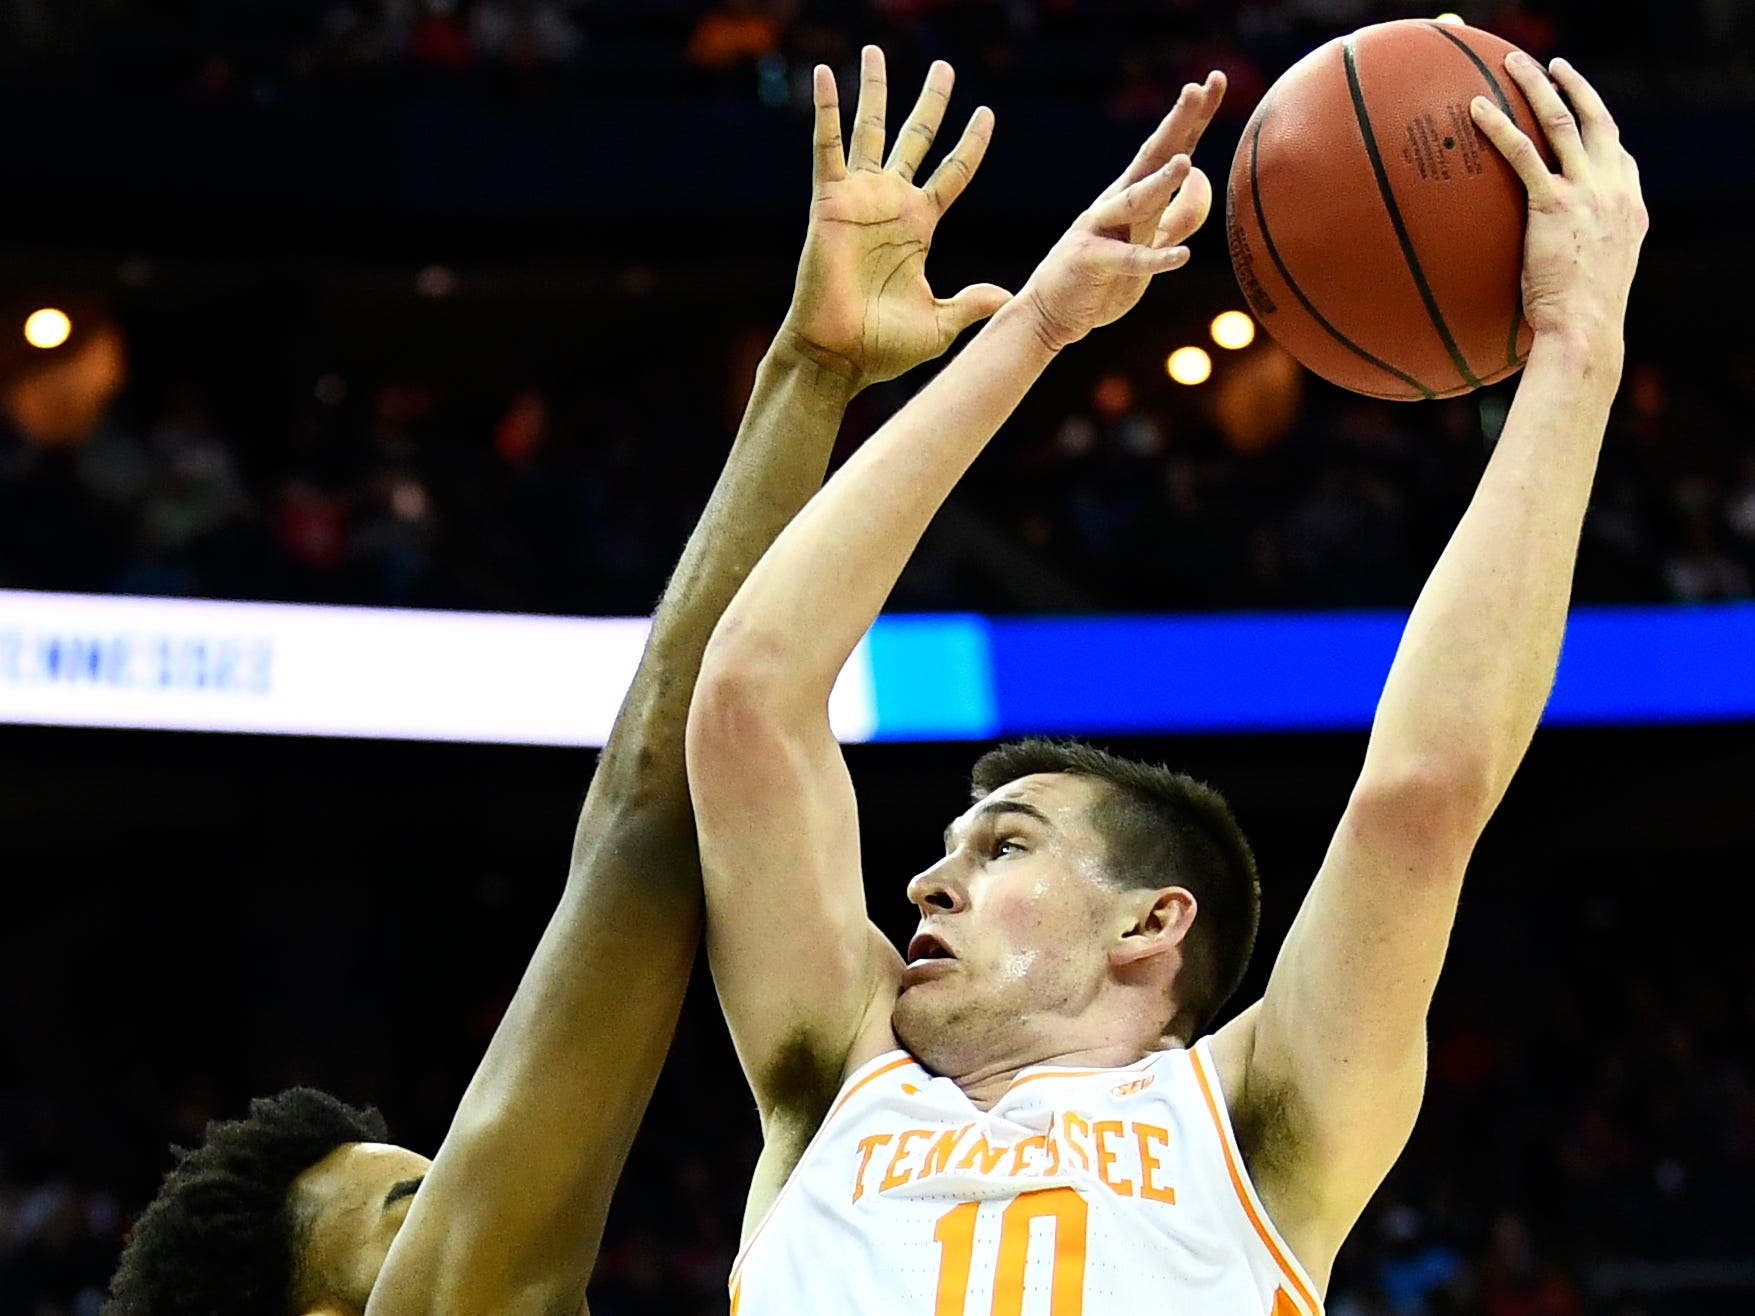 Tennessee forward John Fulkerson (10) shoots against Colgate forward Malcolm Regisford (5) during their first round game of the NCAA Tournament at Nationwide Arena in Columbus, Ohio, on Friday, March 22, 2019.